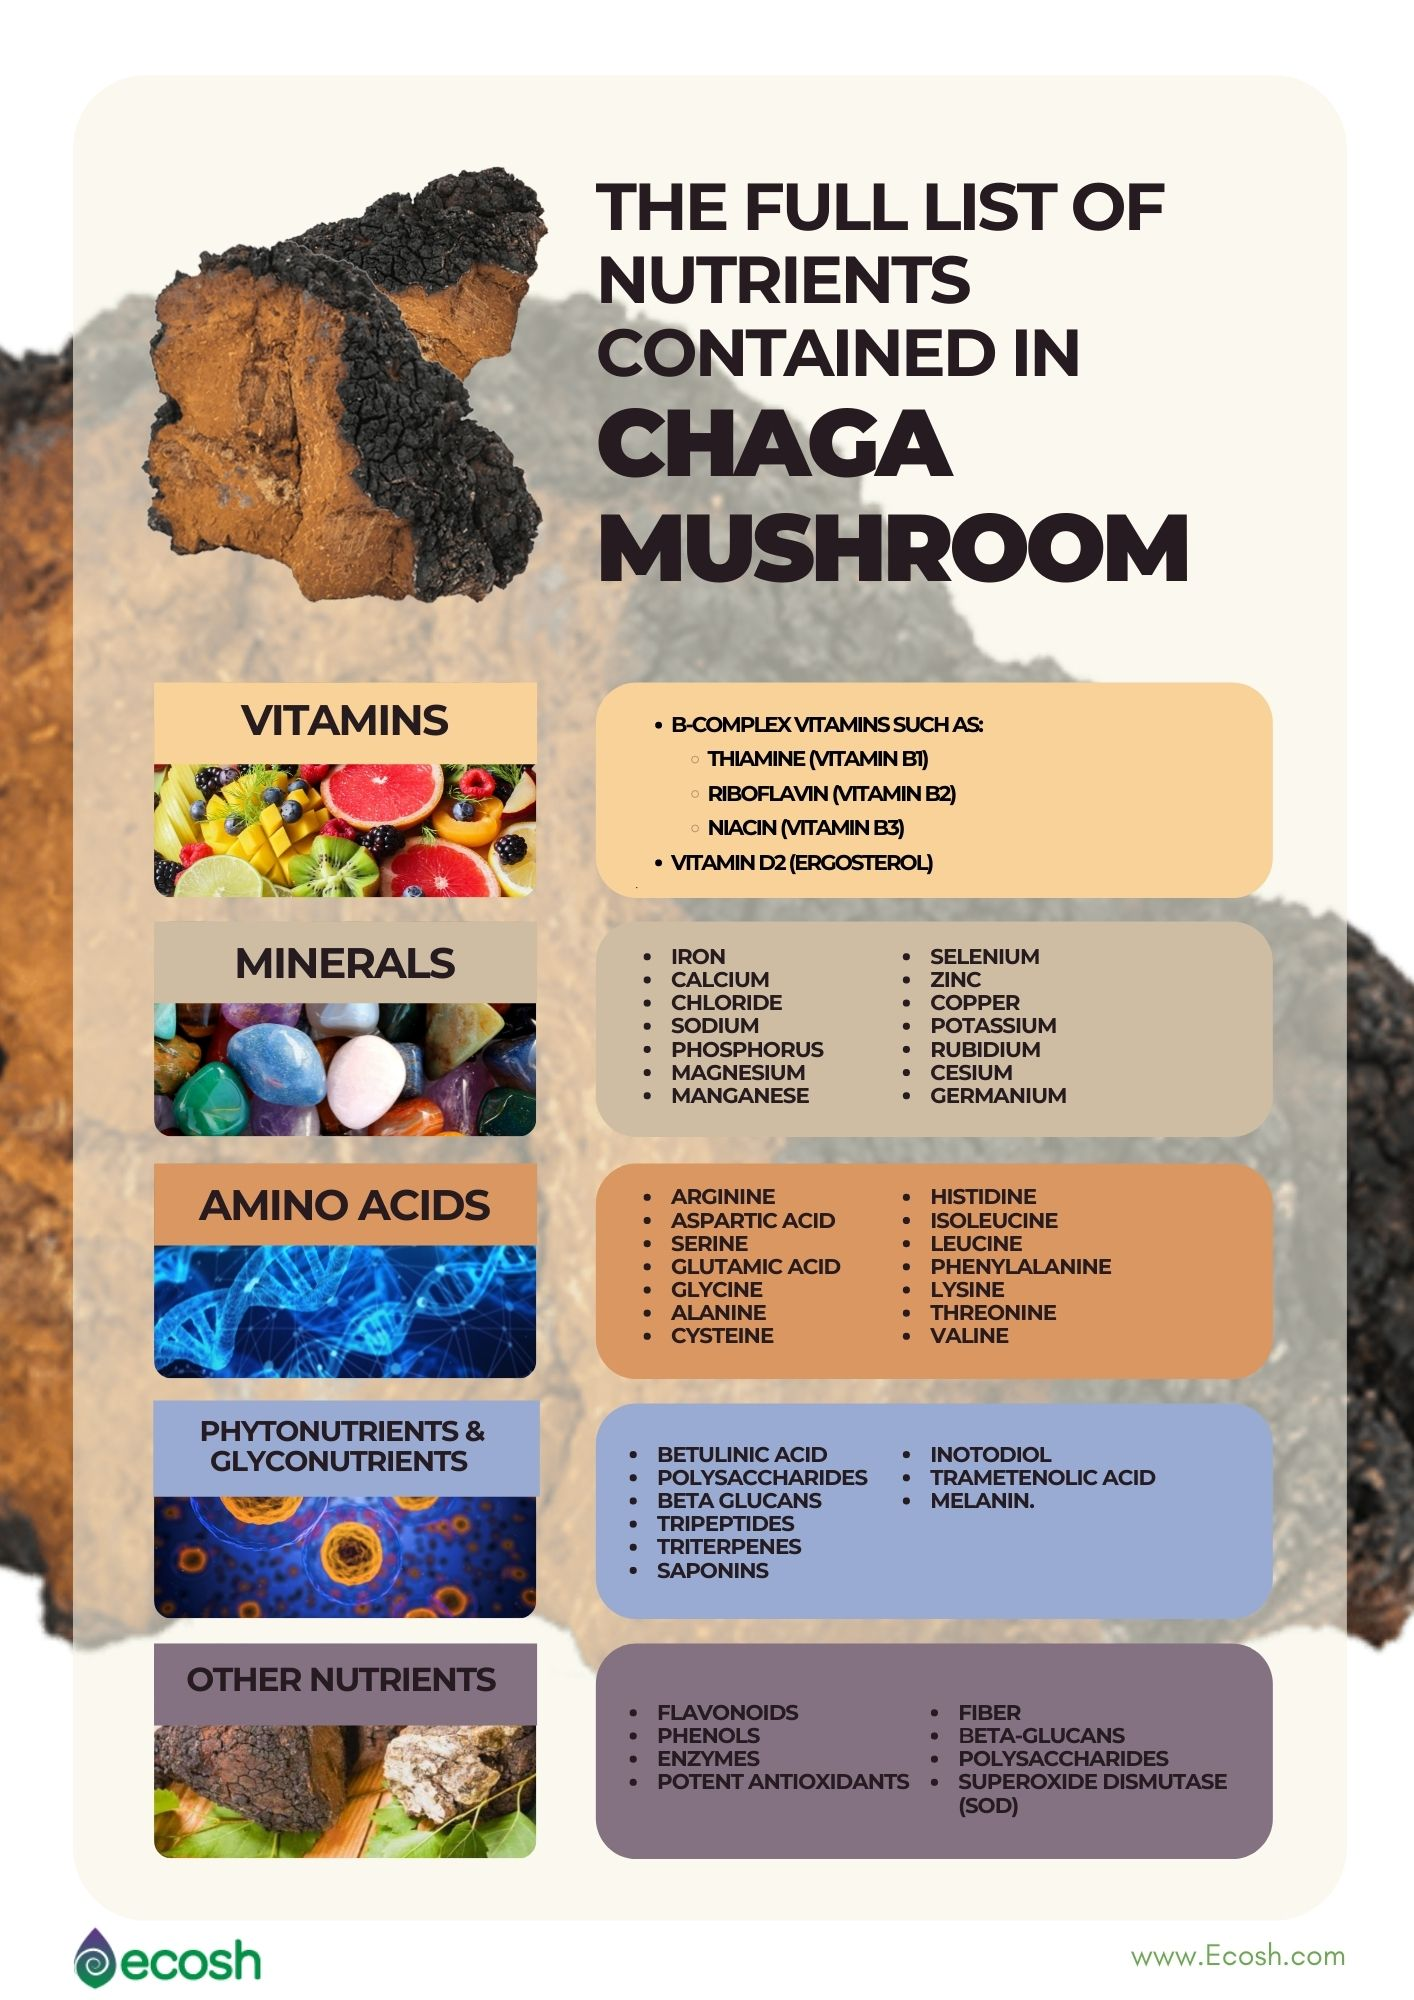 Ecosh_The_Full_List_of_Nutrients_In_Chaga_Vitamins_In_Chaga_Minerals_in_Chaga_Amino_Acids_In_Chaga_Mushroom_Antioxidants_In_Chaga_SOD_In_Chaga_Mushroom_Vitamins_in_Chaga_